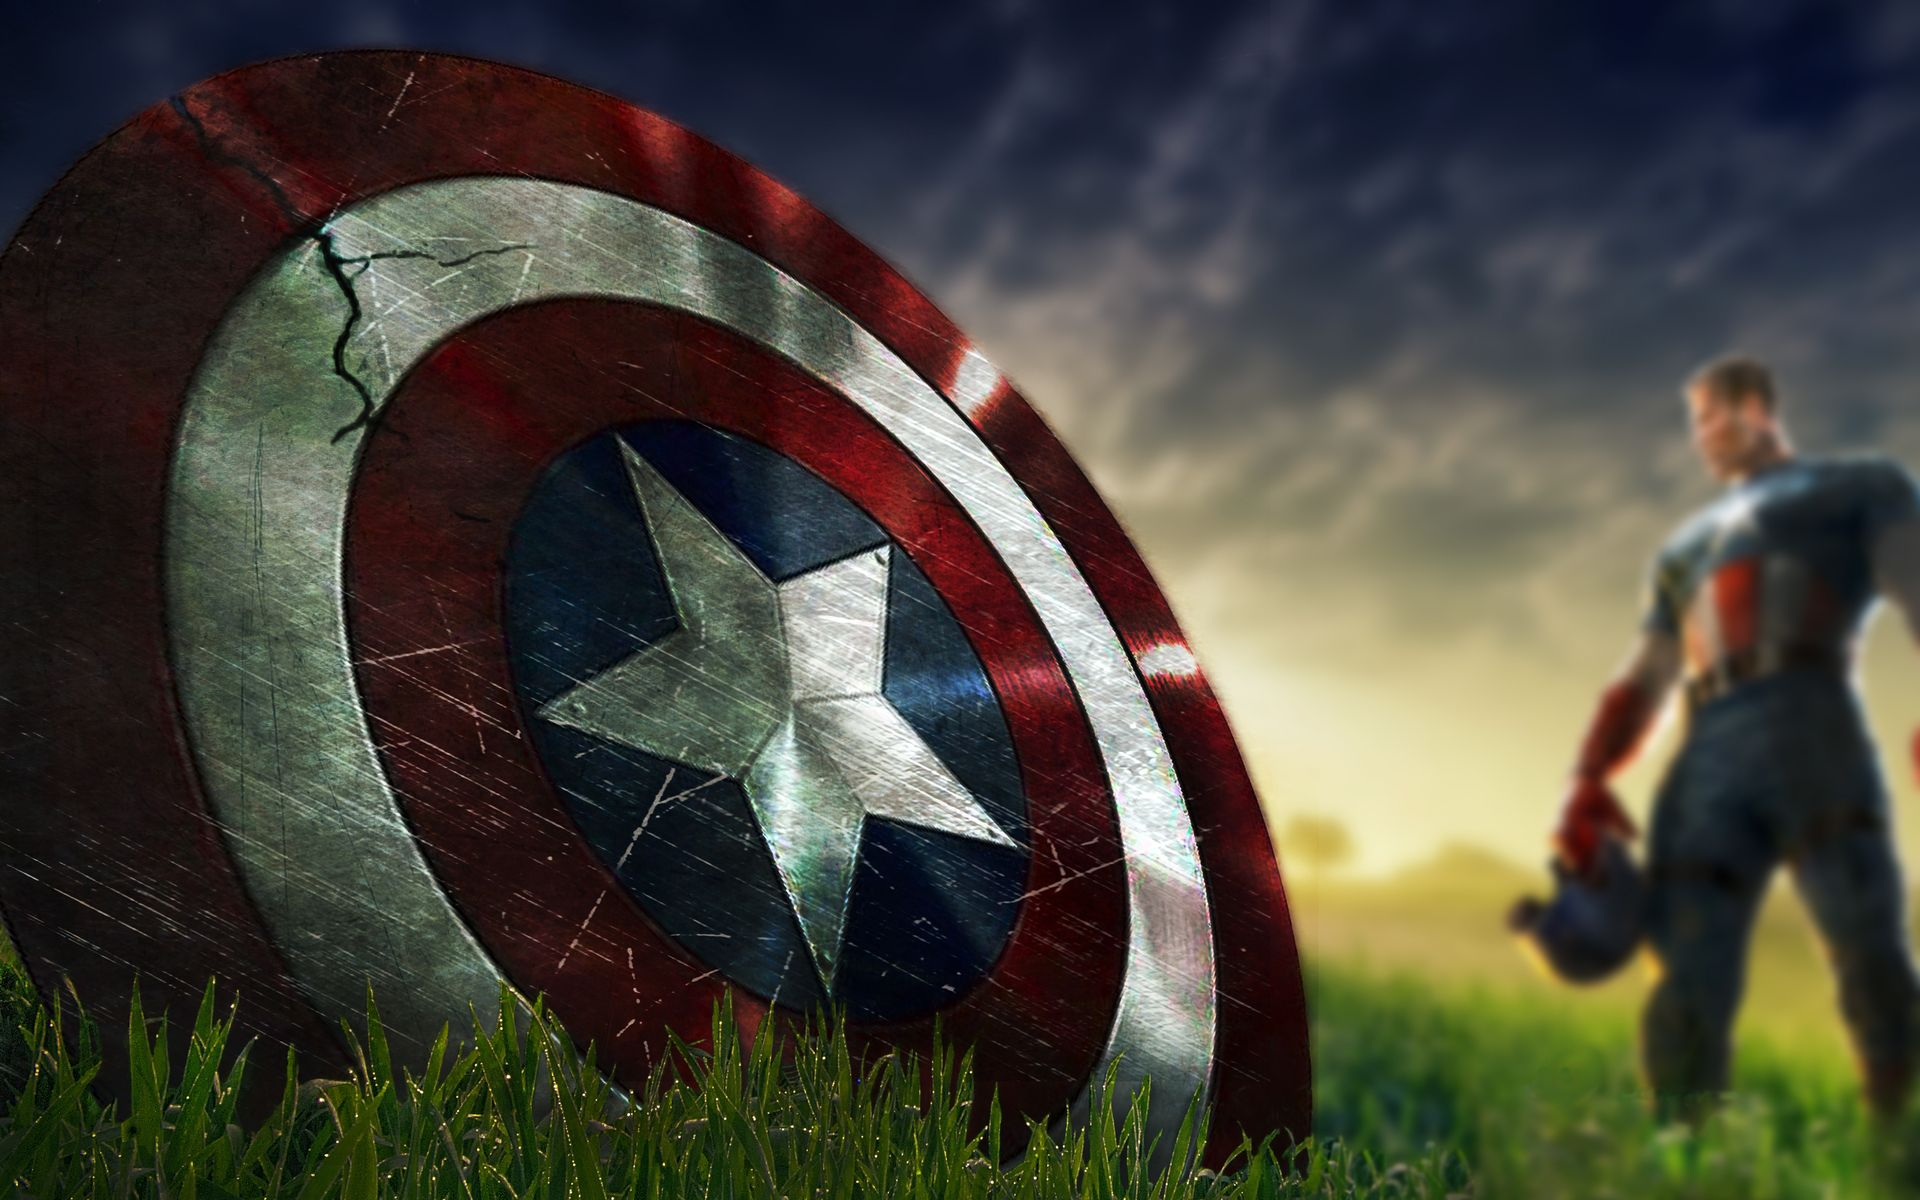 Hd wallpaper of captain america - Free Hd Captain America Images